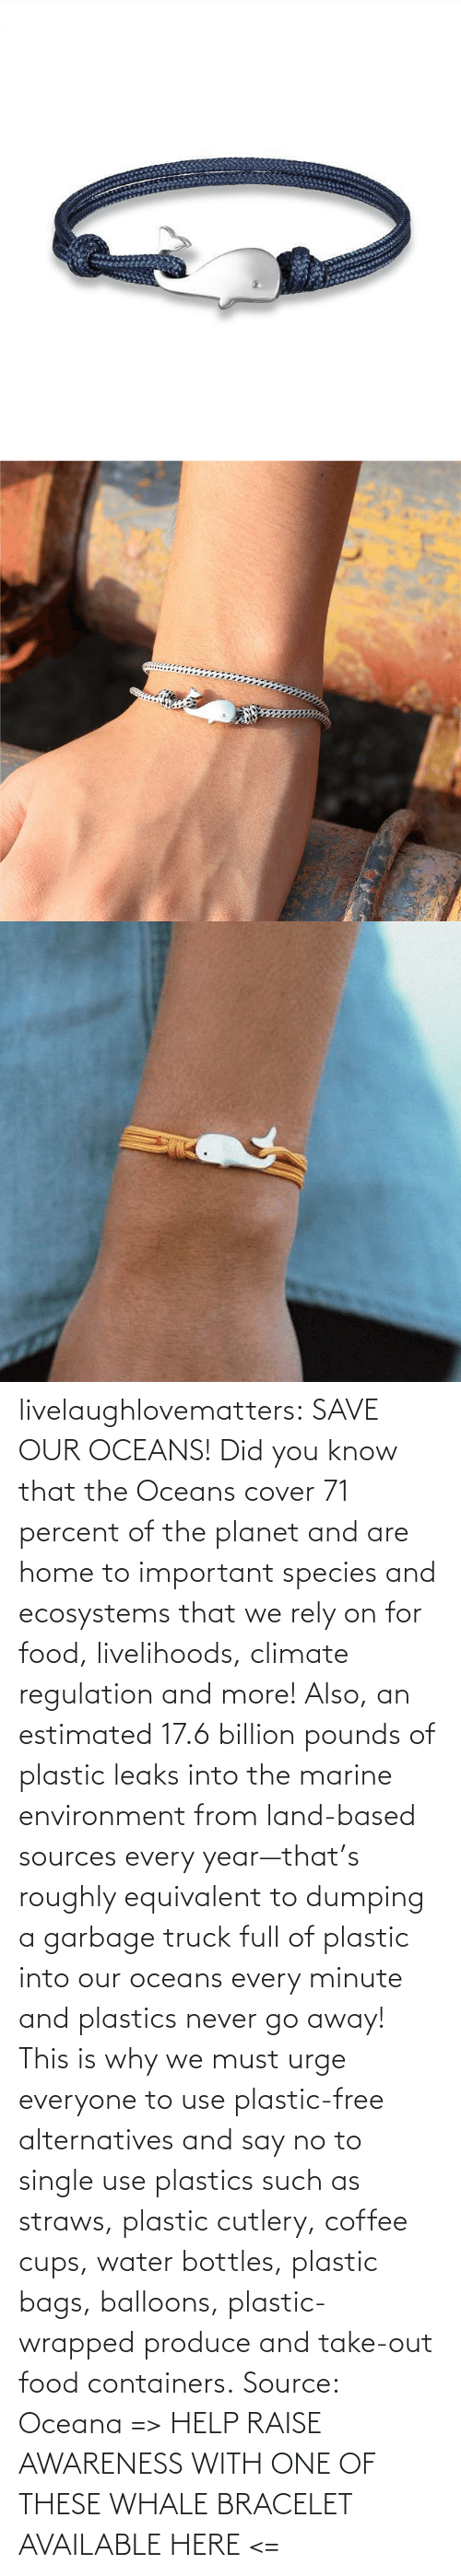 Save: livelaughlovematters: SAVE OUR OCEANS!  Did you know that the Oceans cover 71 percent of the planet and are home to important species and ecosystems that we rely on for food, livelihoods, climate regulation and more! Also, an estimated 17.6 billion pounds of plastic leaks into the marine environment from land-based sources every year—that's roughly equivalent to dumping a garbage truck full of plastic into our oceans every minute and plastics never go away! This is why we must urge everyone to use plastic-free alternatives and say no to single use plastics such as straws, plastic cutlery, coffee cups, water bottles, plastic bags, balloons, plastic-wrapped produce and take-out food containers. Source: Oceana => HELP RAISE AWARENESS WITH ONE OF THESE WHALE BRACELET AVAILABLE HERE <=